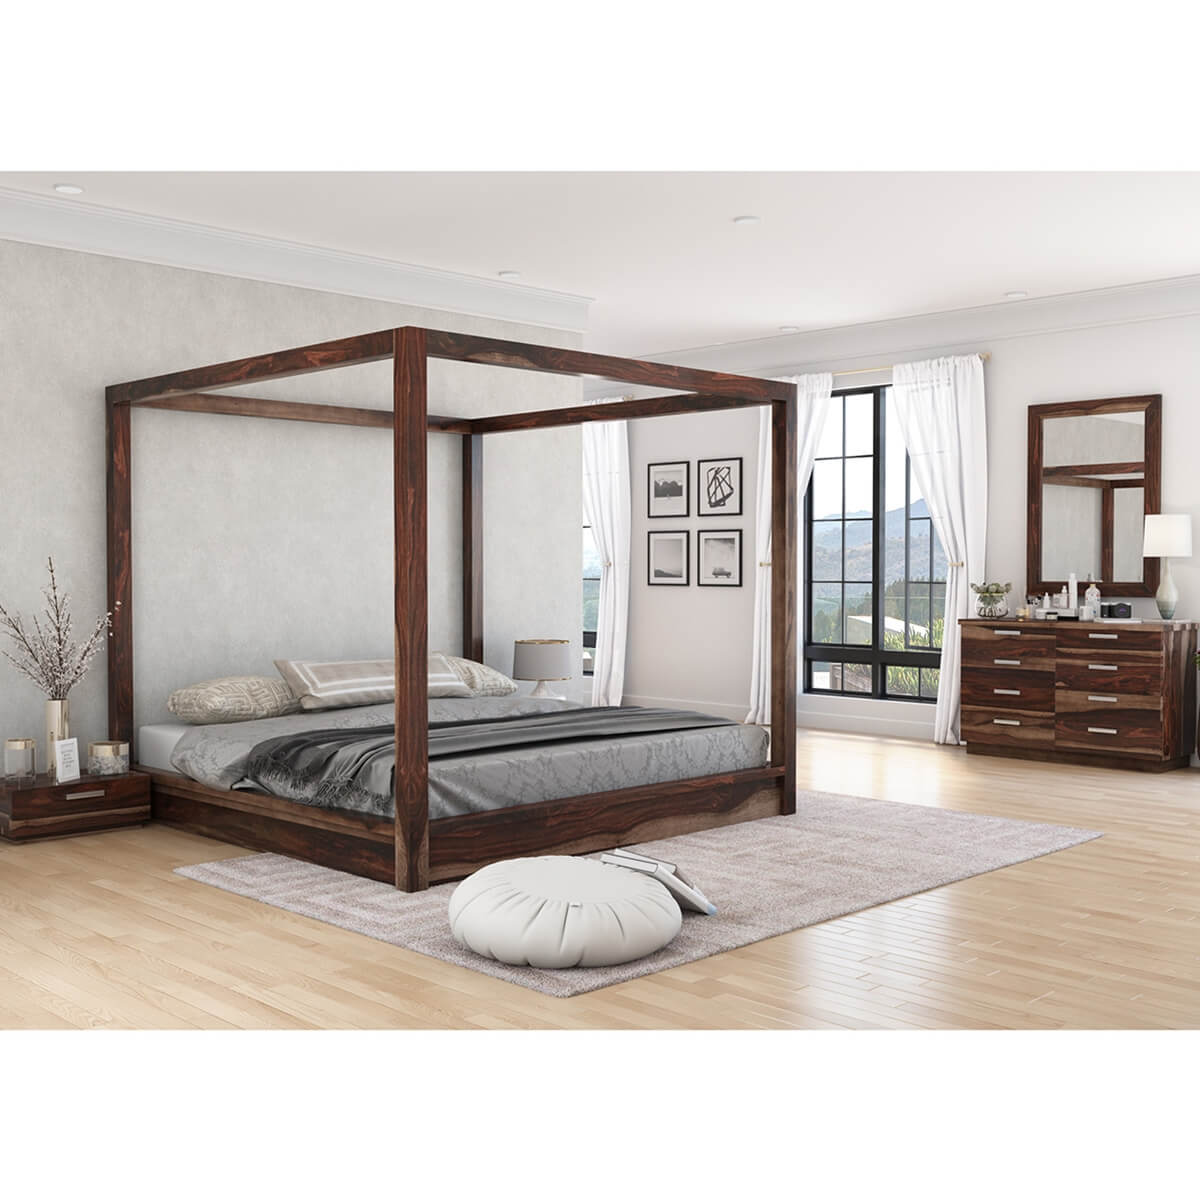 Hampshire Solid Wood Queen Size Canopy Bed 7pc Bedroom Furniture Set